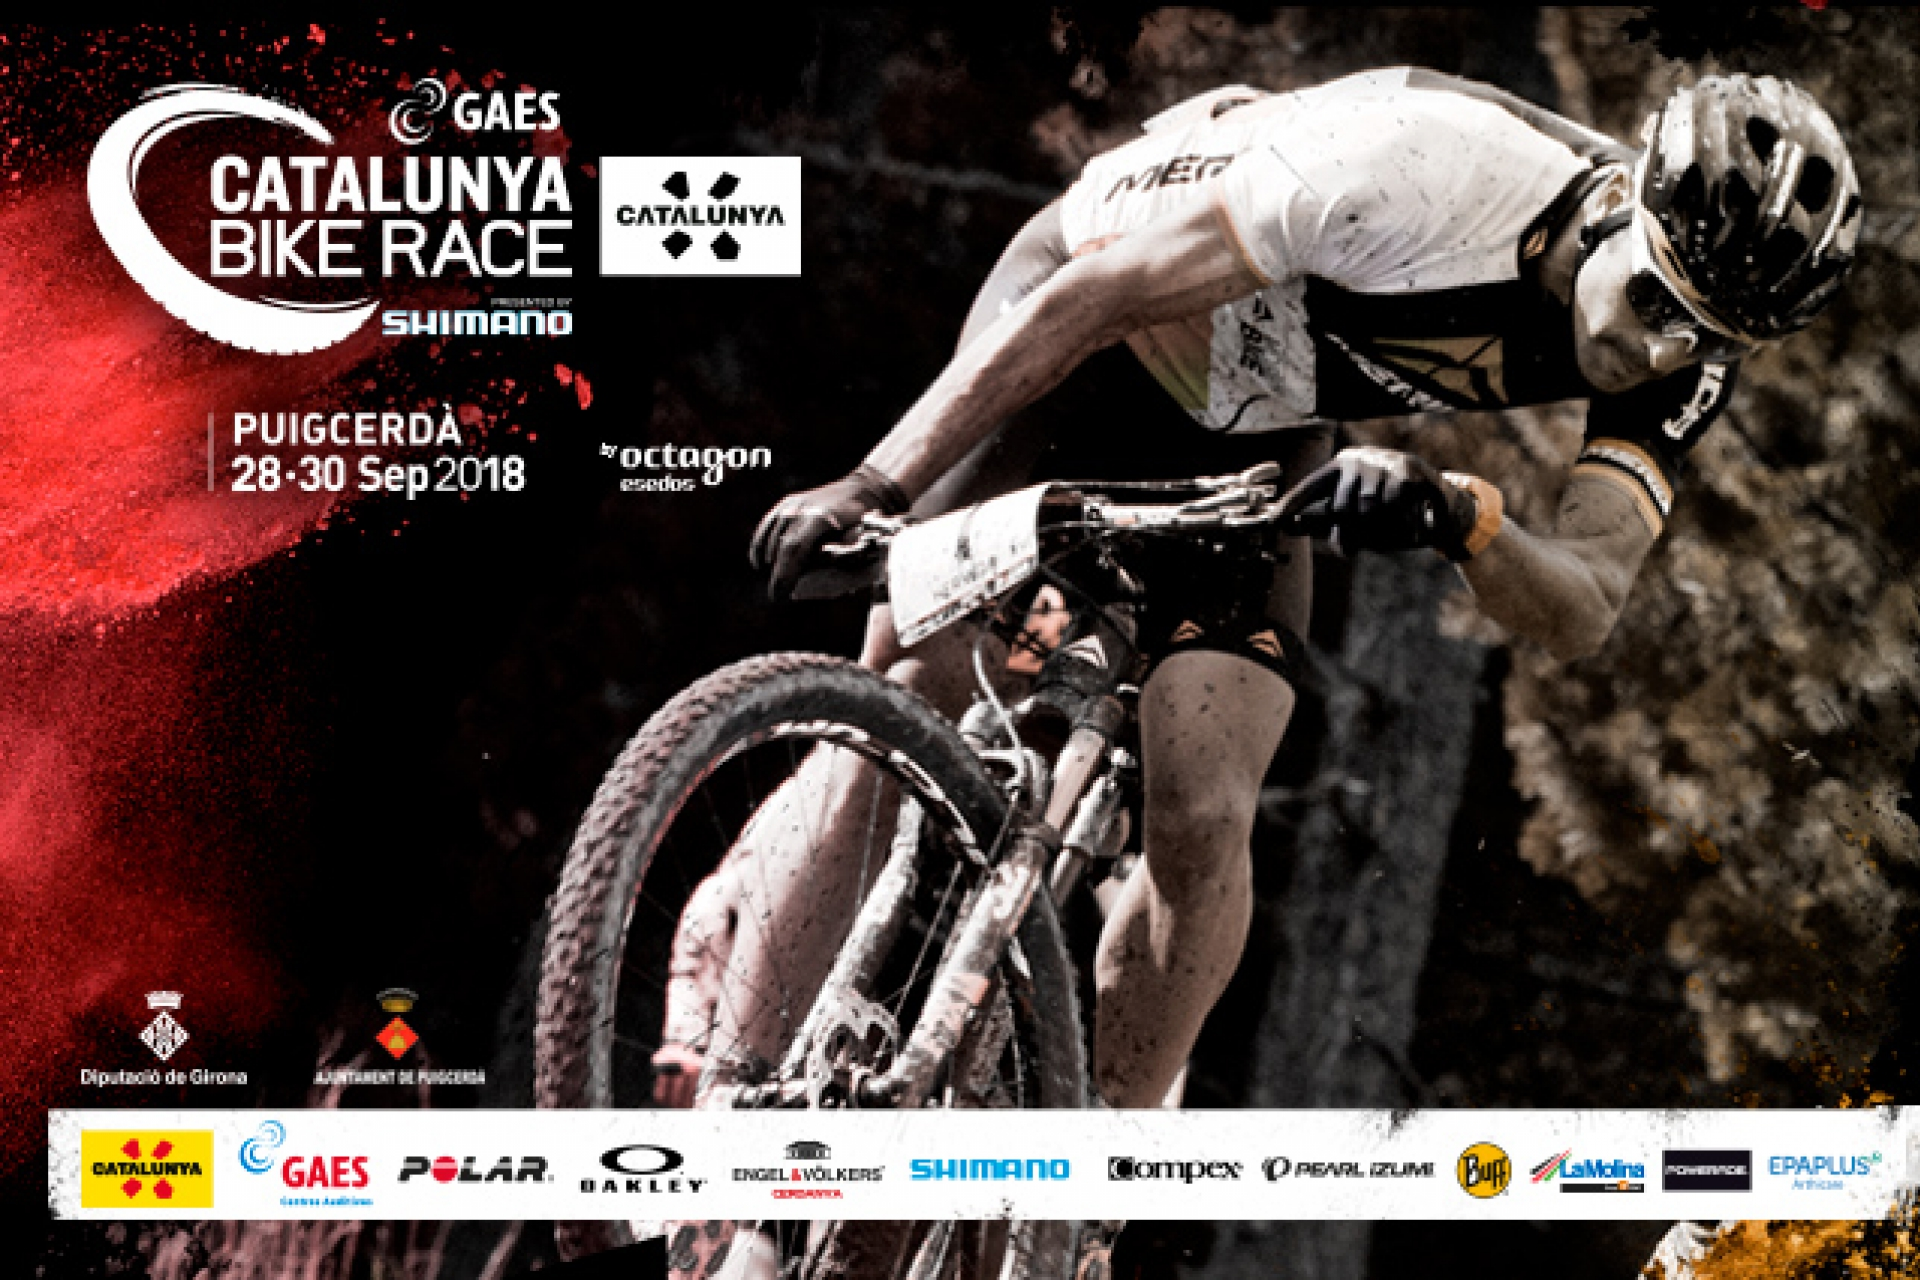 Inscriu-te a GAES Catalunya Bike Race presented by Shimano!